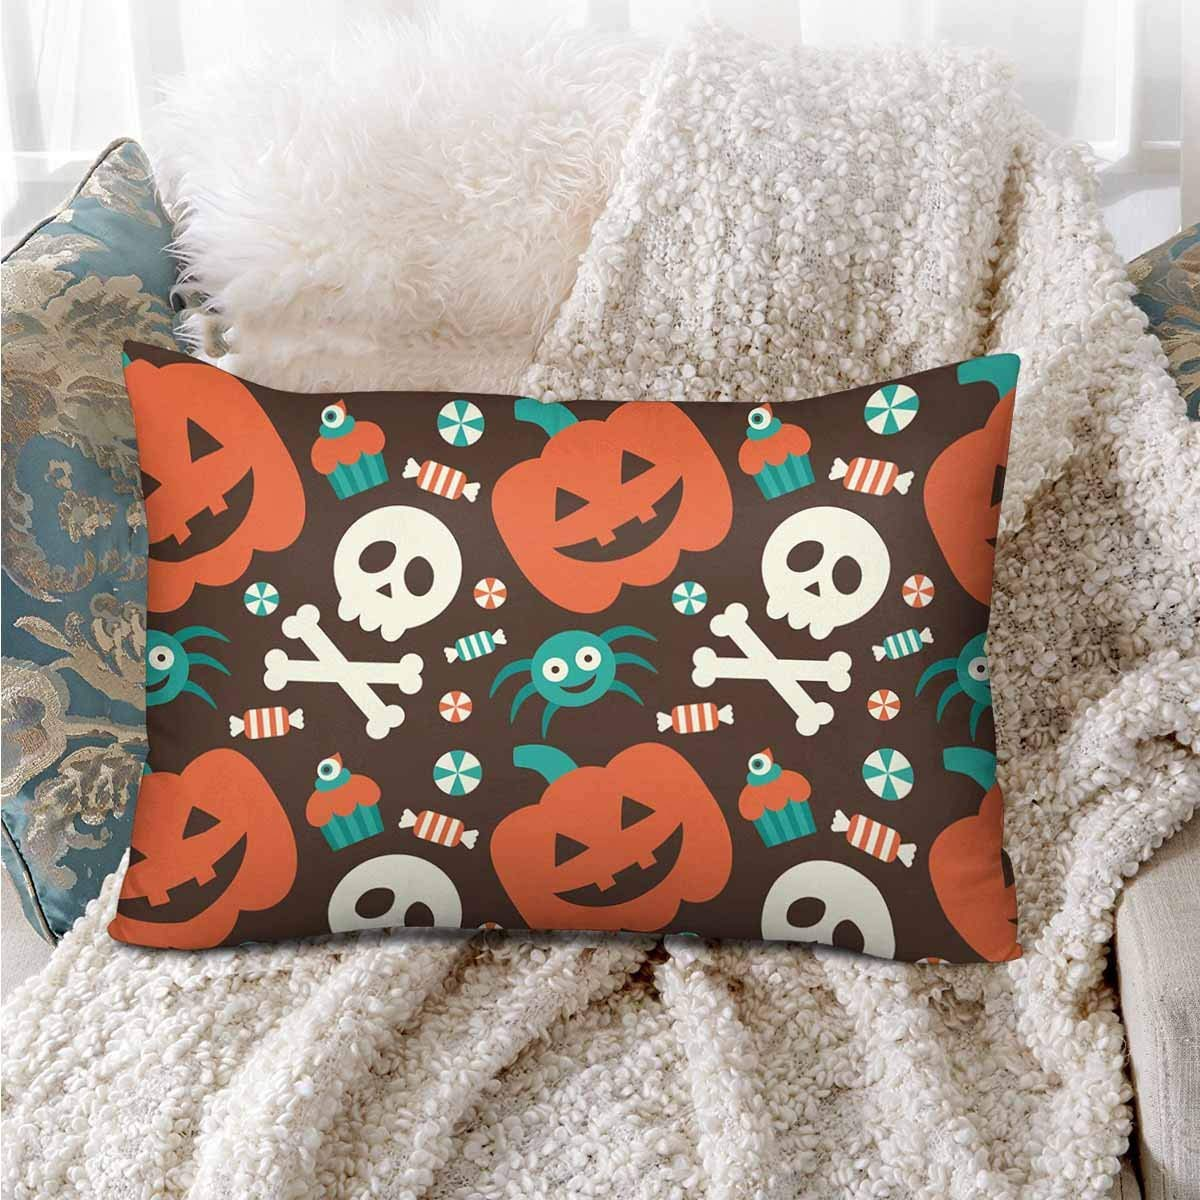 GCKG Halloween Seamless Pattern Pumpkin Skull Spider Candy Pillow Cases Pillowcase 20x30 inches - image 1 of 4